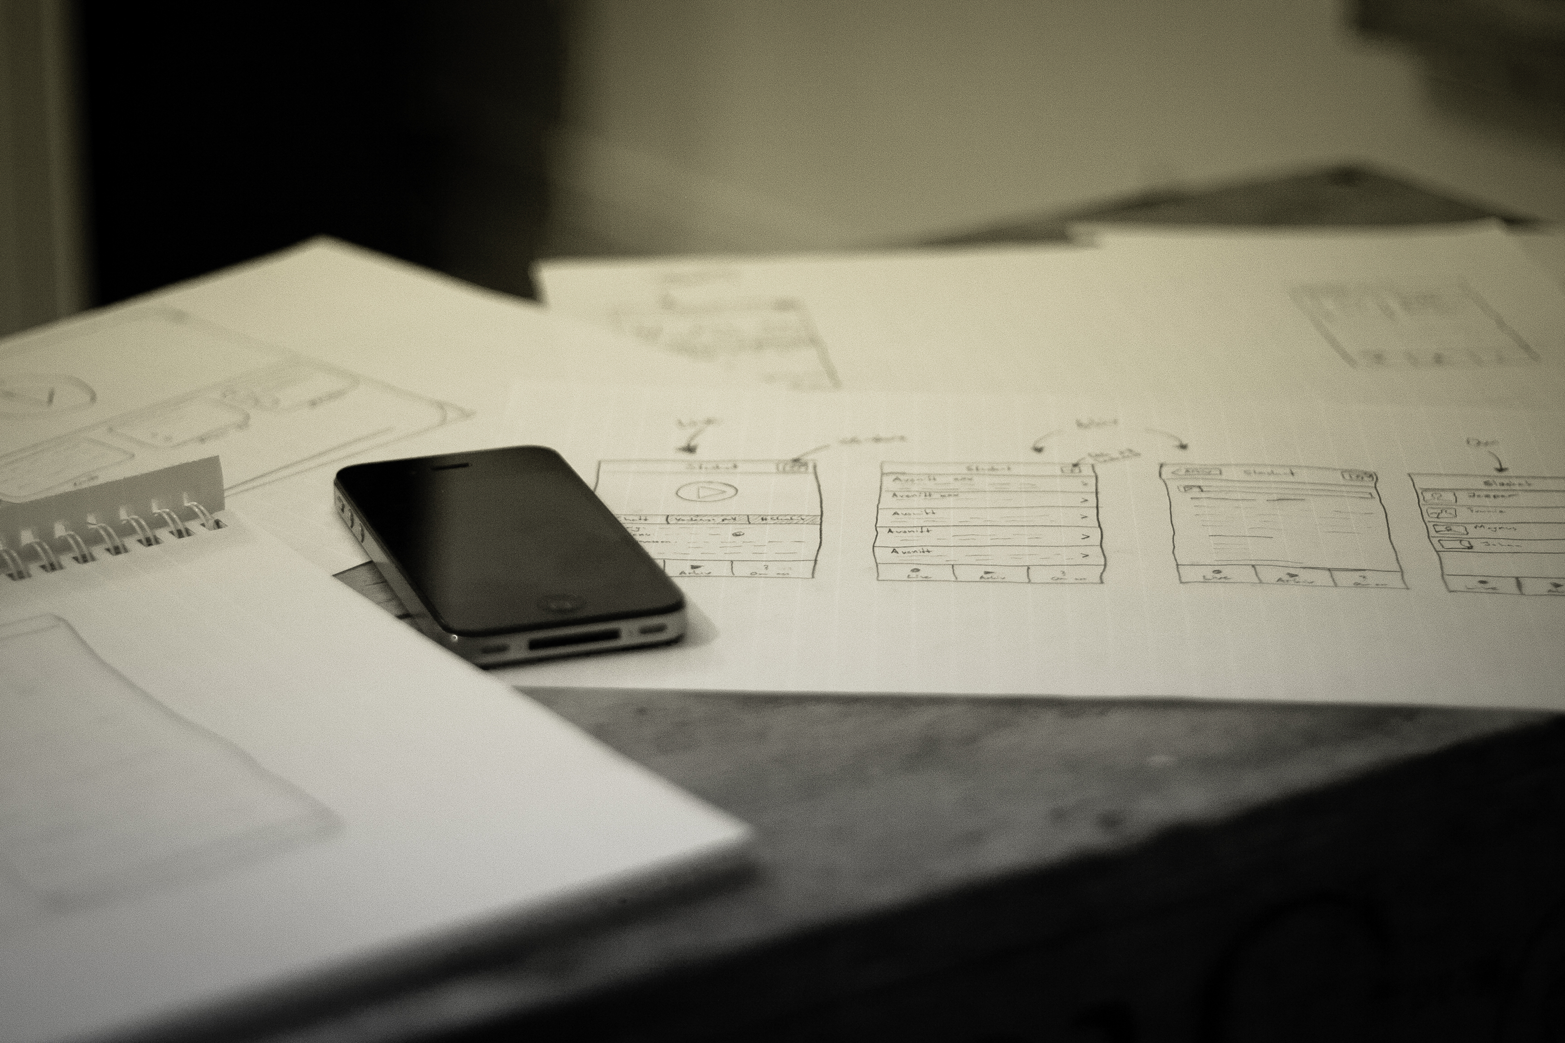 Digital software and apps need initial paper prototypes to explore and try a variety of different directions for the design (photo courtesy of Flickr user Johan Larsson)